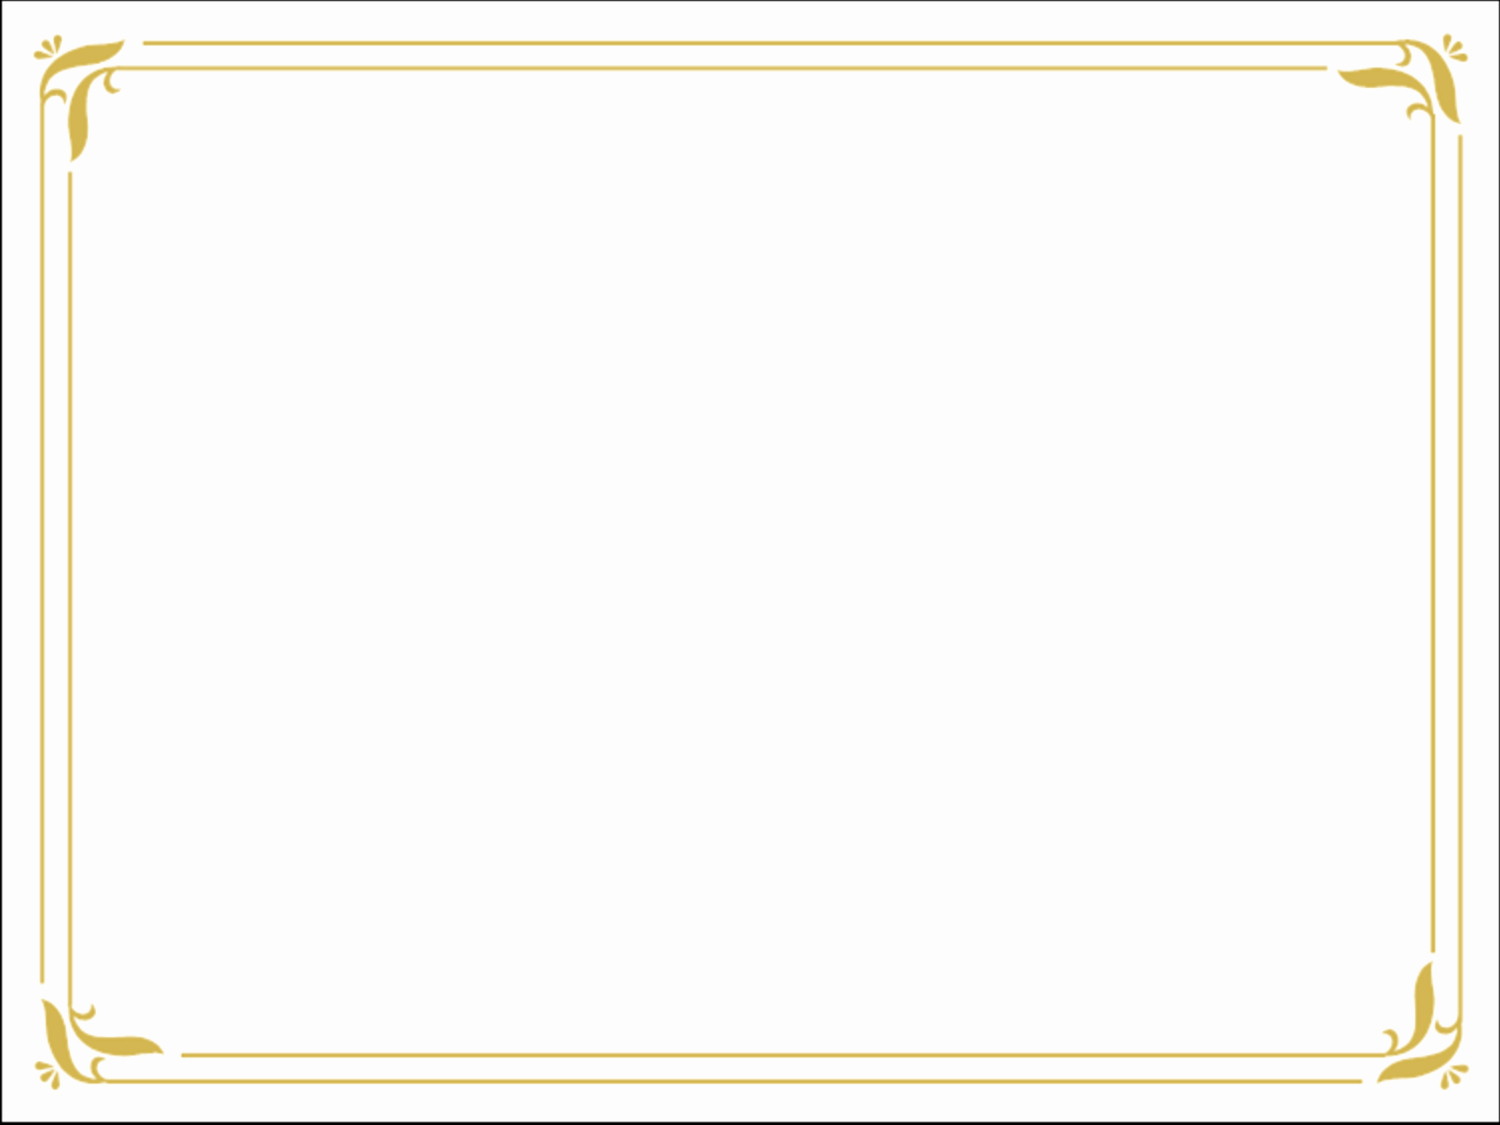 Certificate Border Template for Word Elegant Png Certificate Borders Free Transparent Certificate